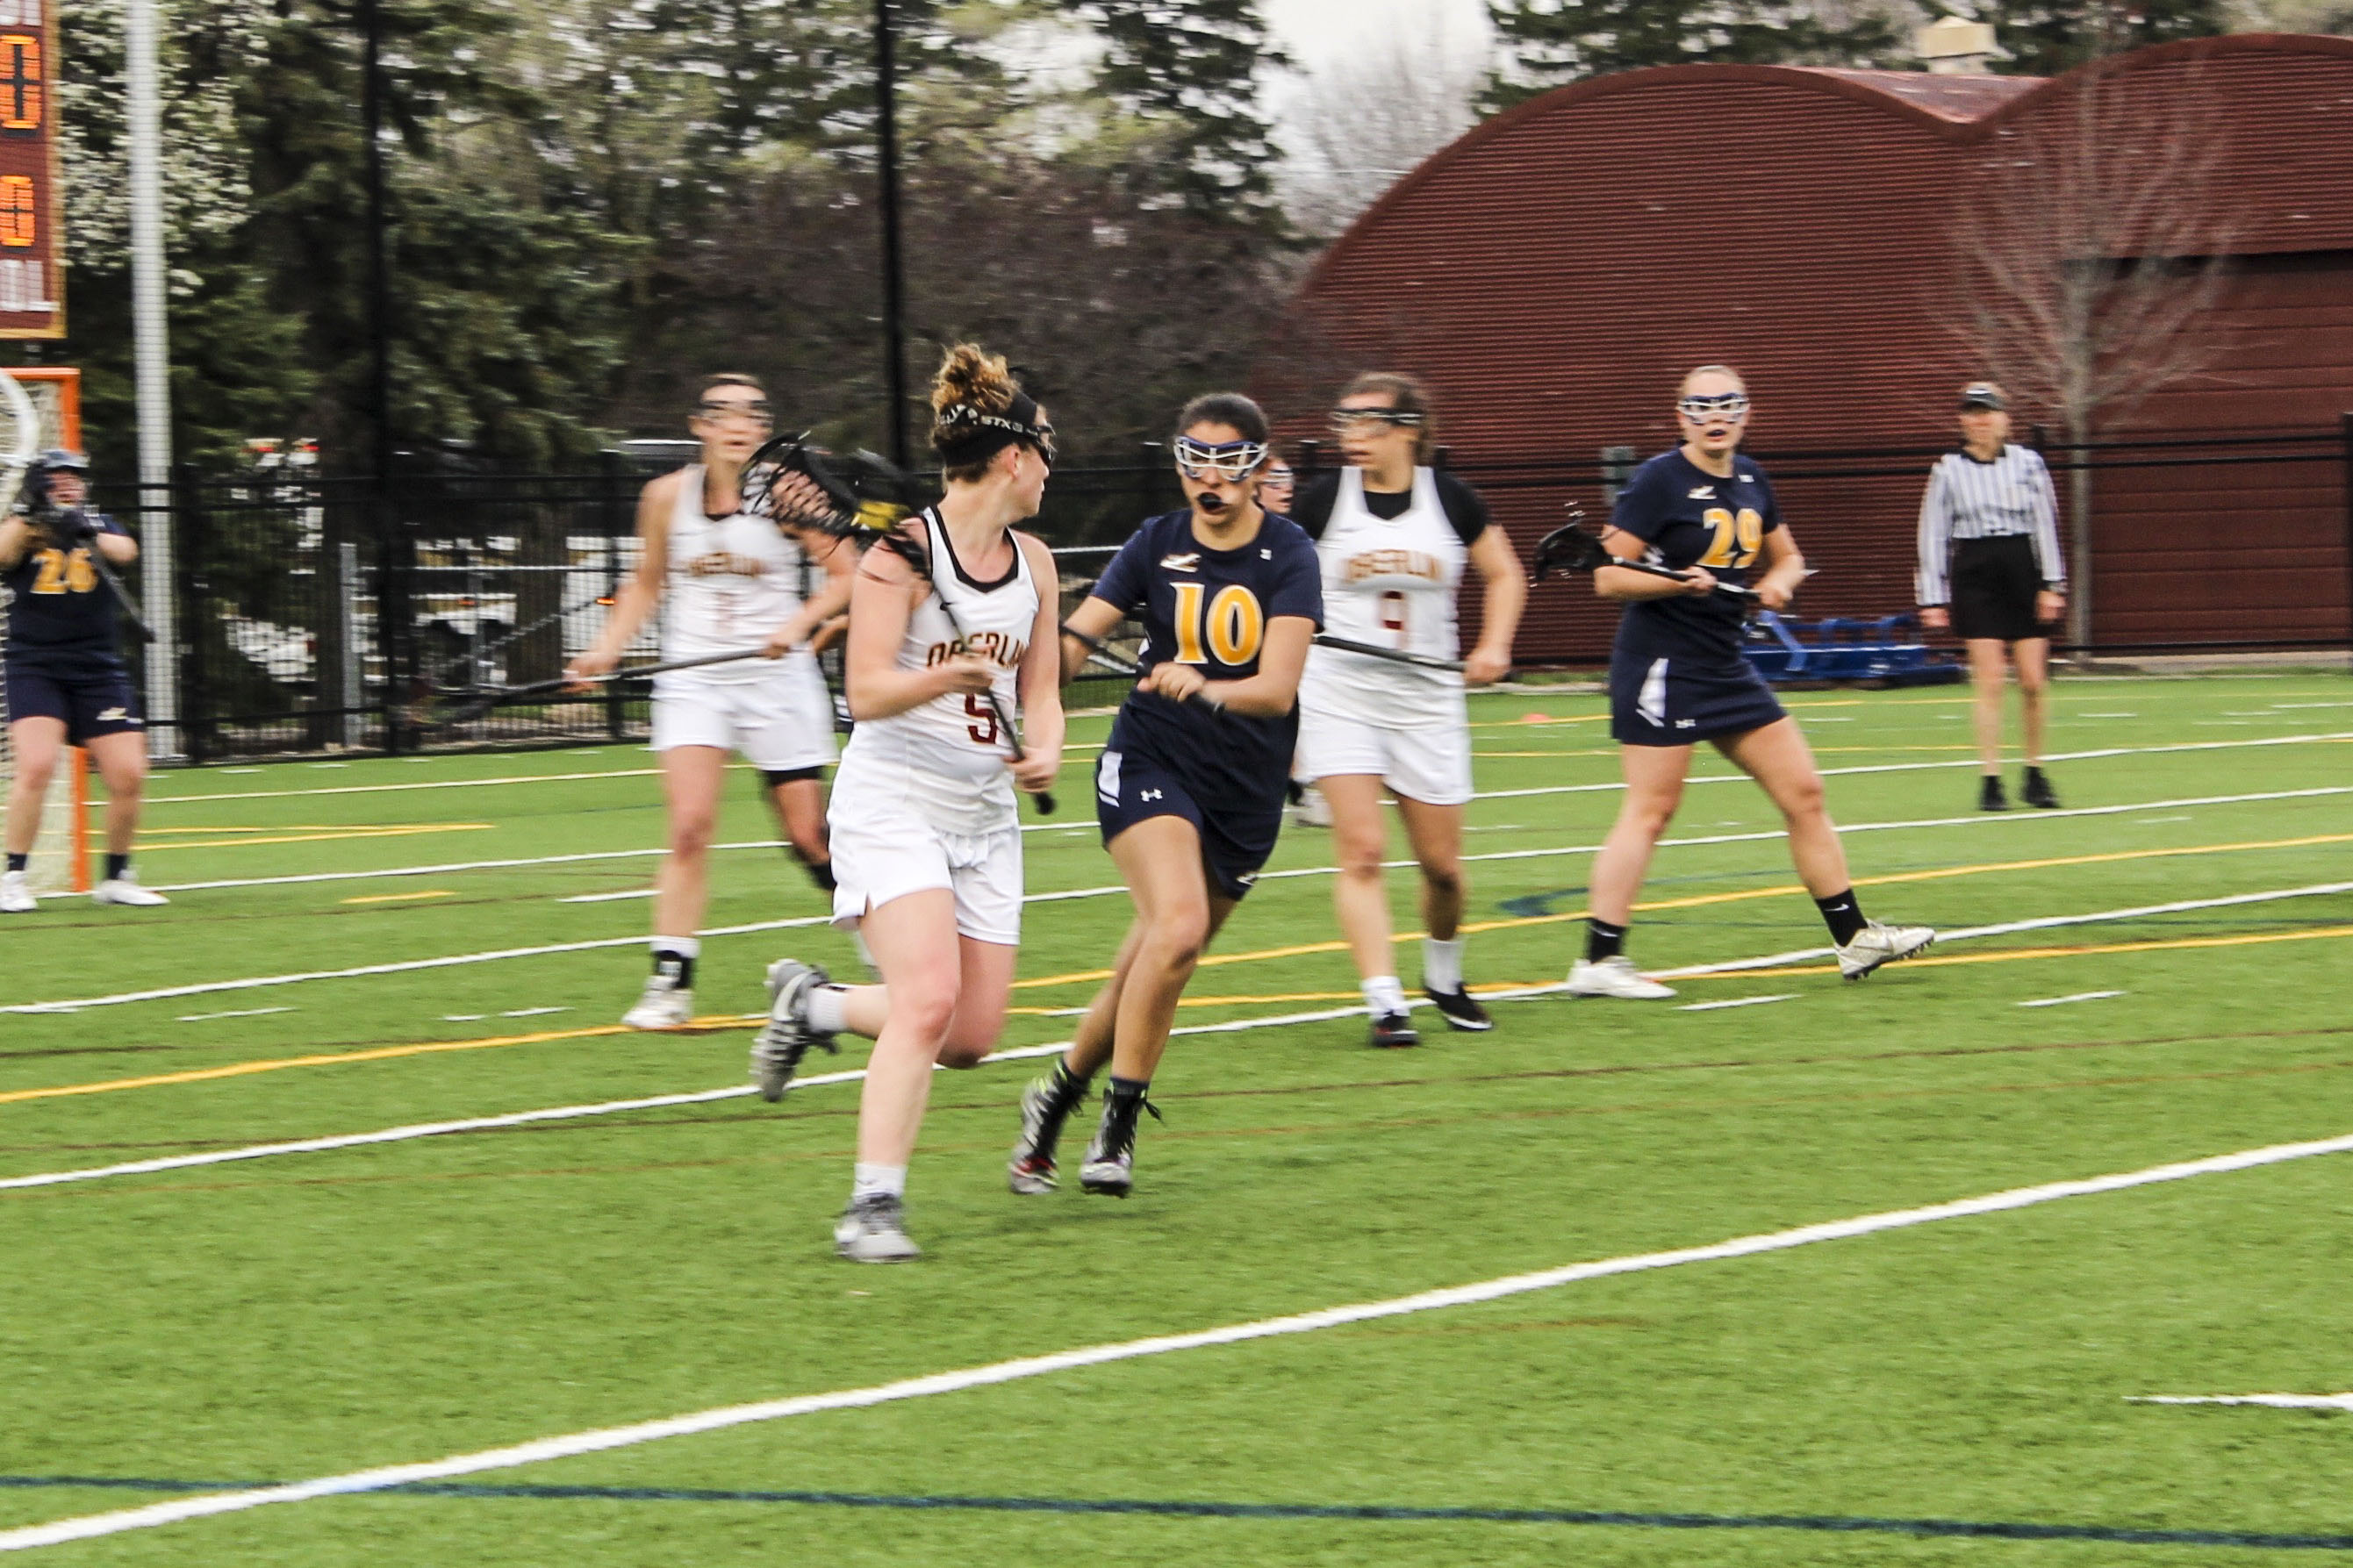 Sophomore Hayley Drapkin looks to make a pass in Oberlin's 14–3 win against Allegheny College Tuesday. The Yeowomen are currently 9–1 overall and 3–1 in conference play.